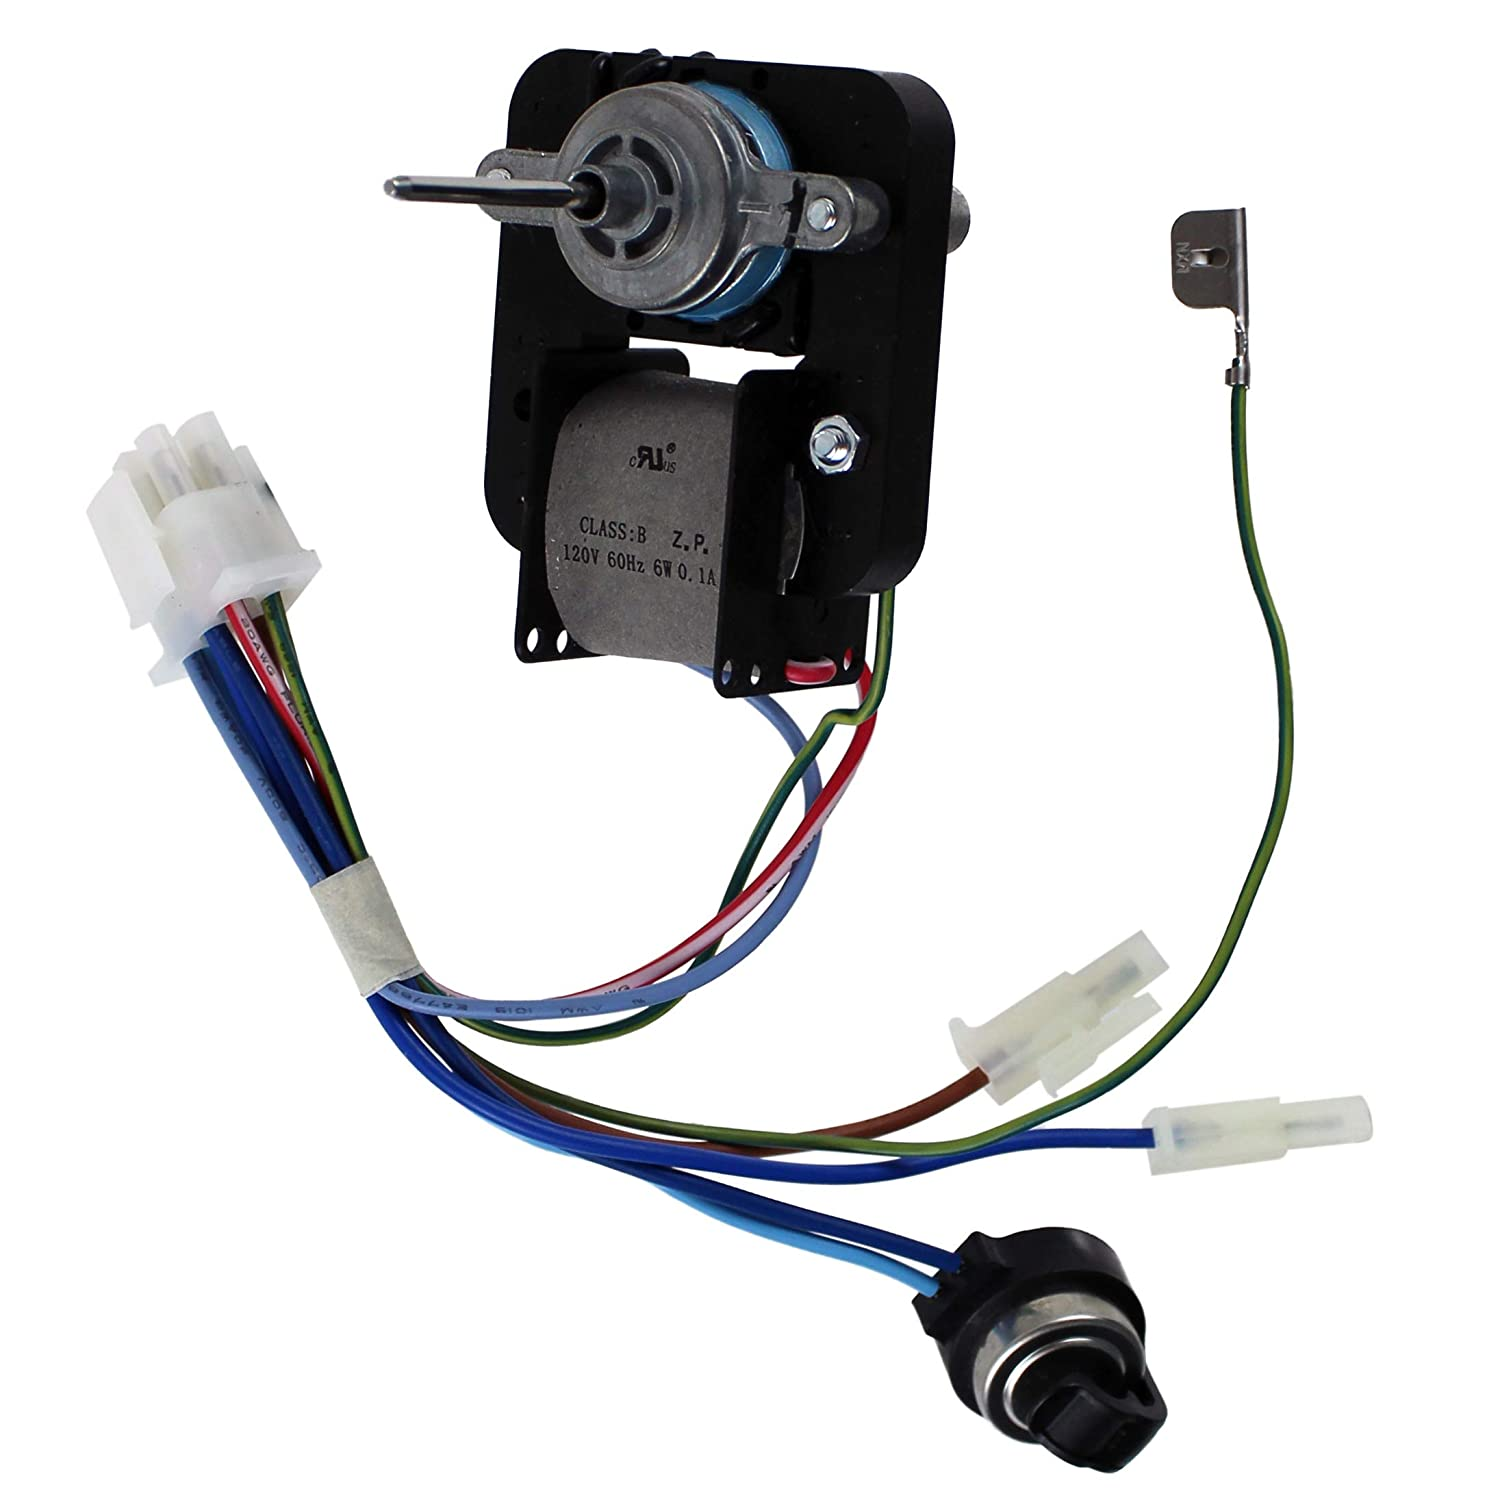 Supplying Demand 808602601 Refrigerator Evaporator Fan Motor Compatible With Frigidaire Fits 241854601, PS11726595